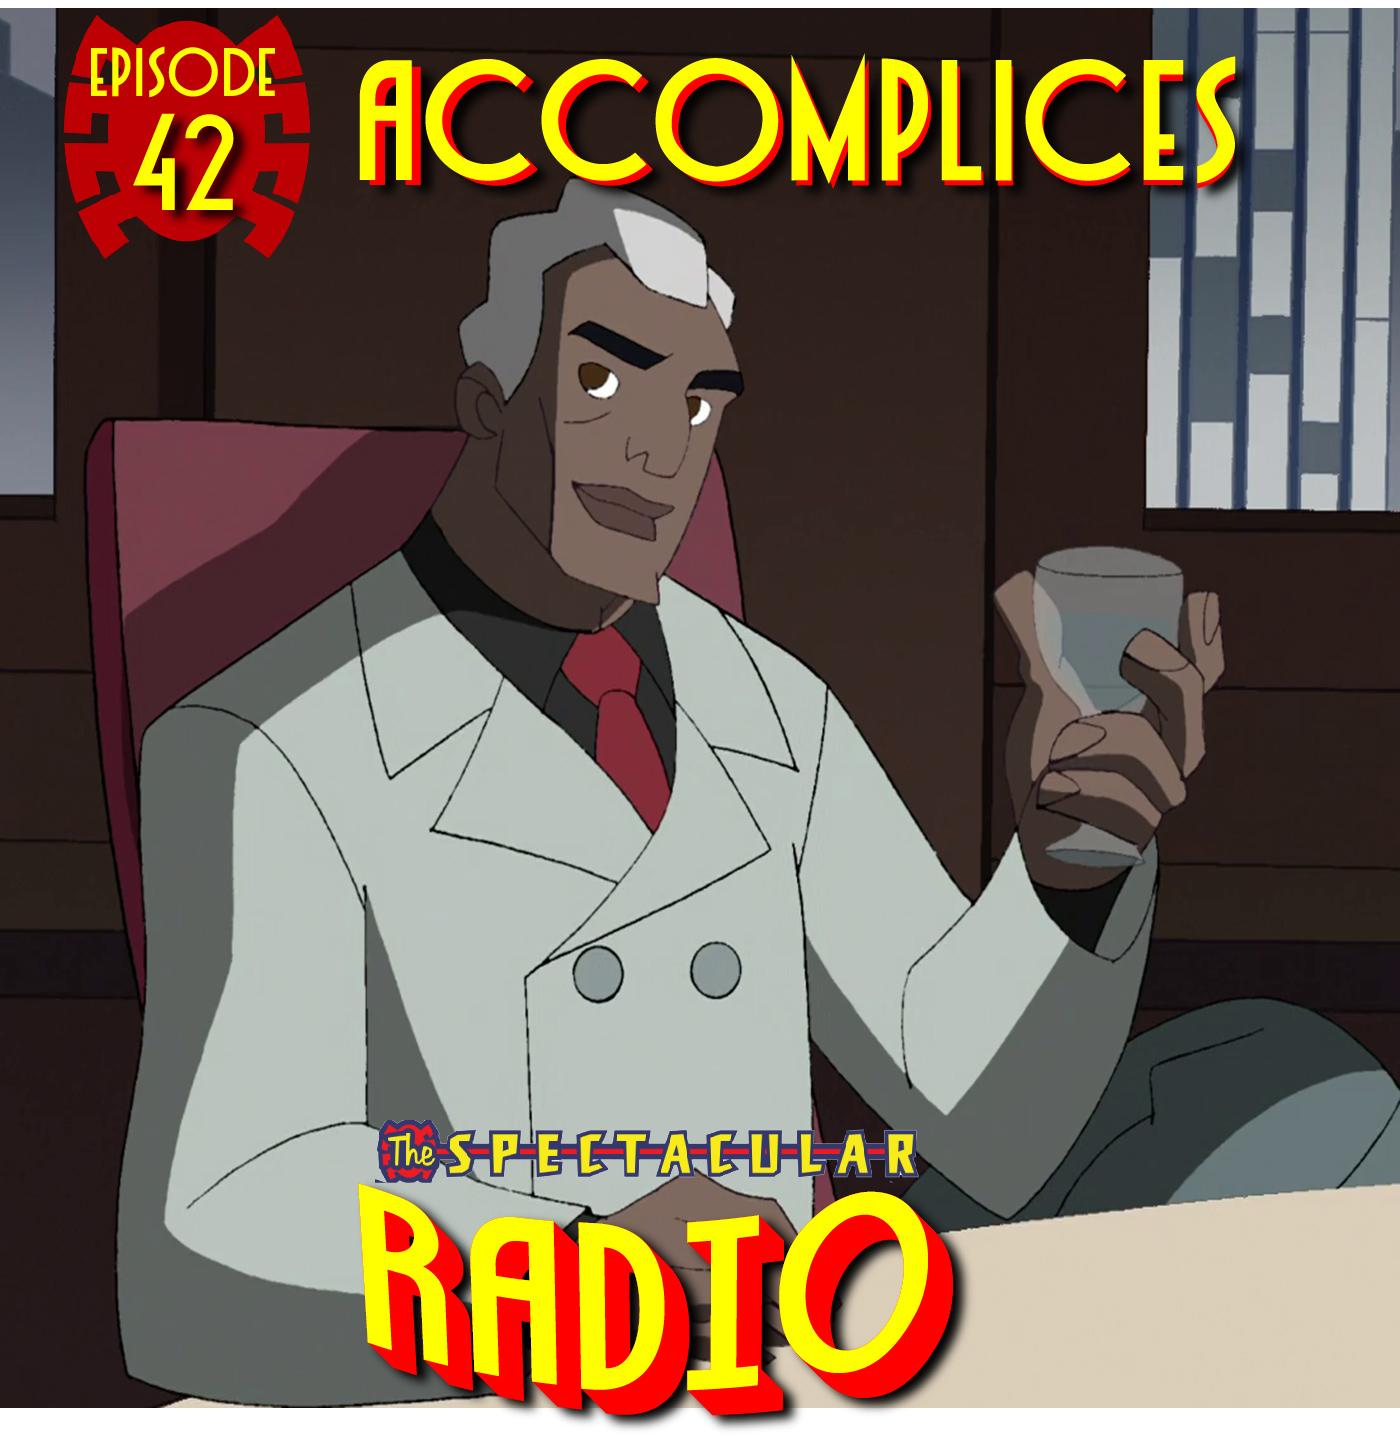 """Spectacular Radio Episode 42: """"Accomplices"""" Fan Panel"""